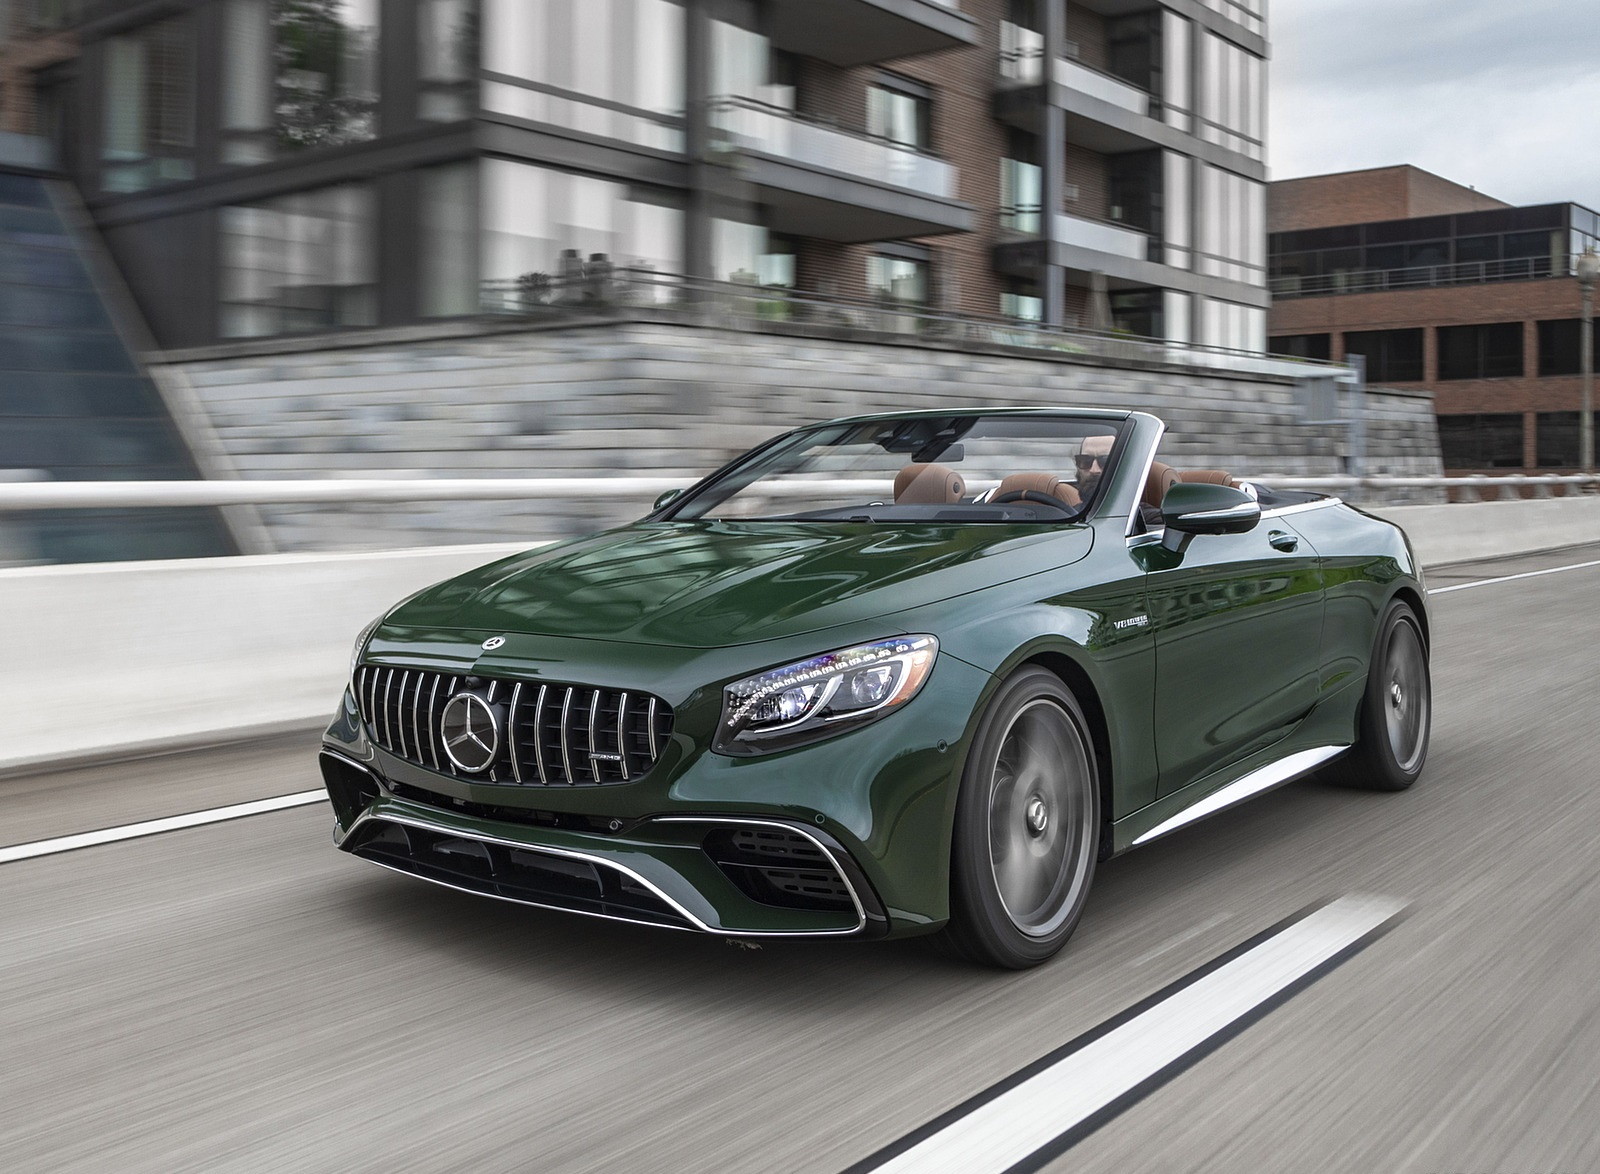 2020 Mercedes-AMG S 63 Cabriolet (US-Spec) Front Three-Quarter Wallpapers (2)